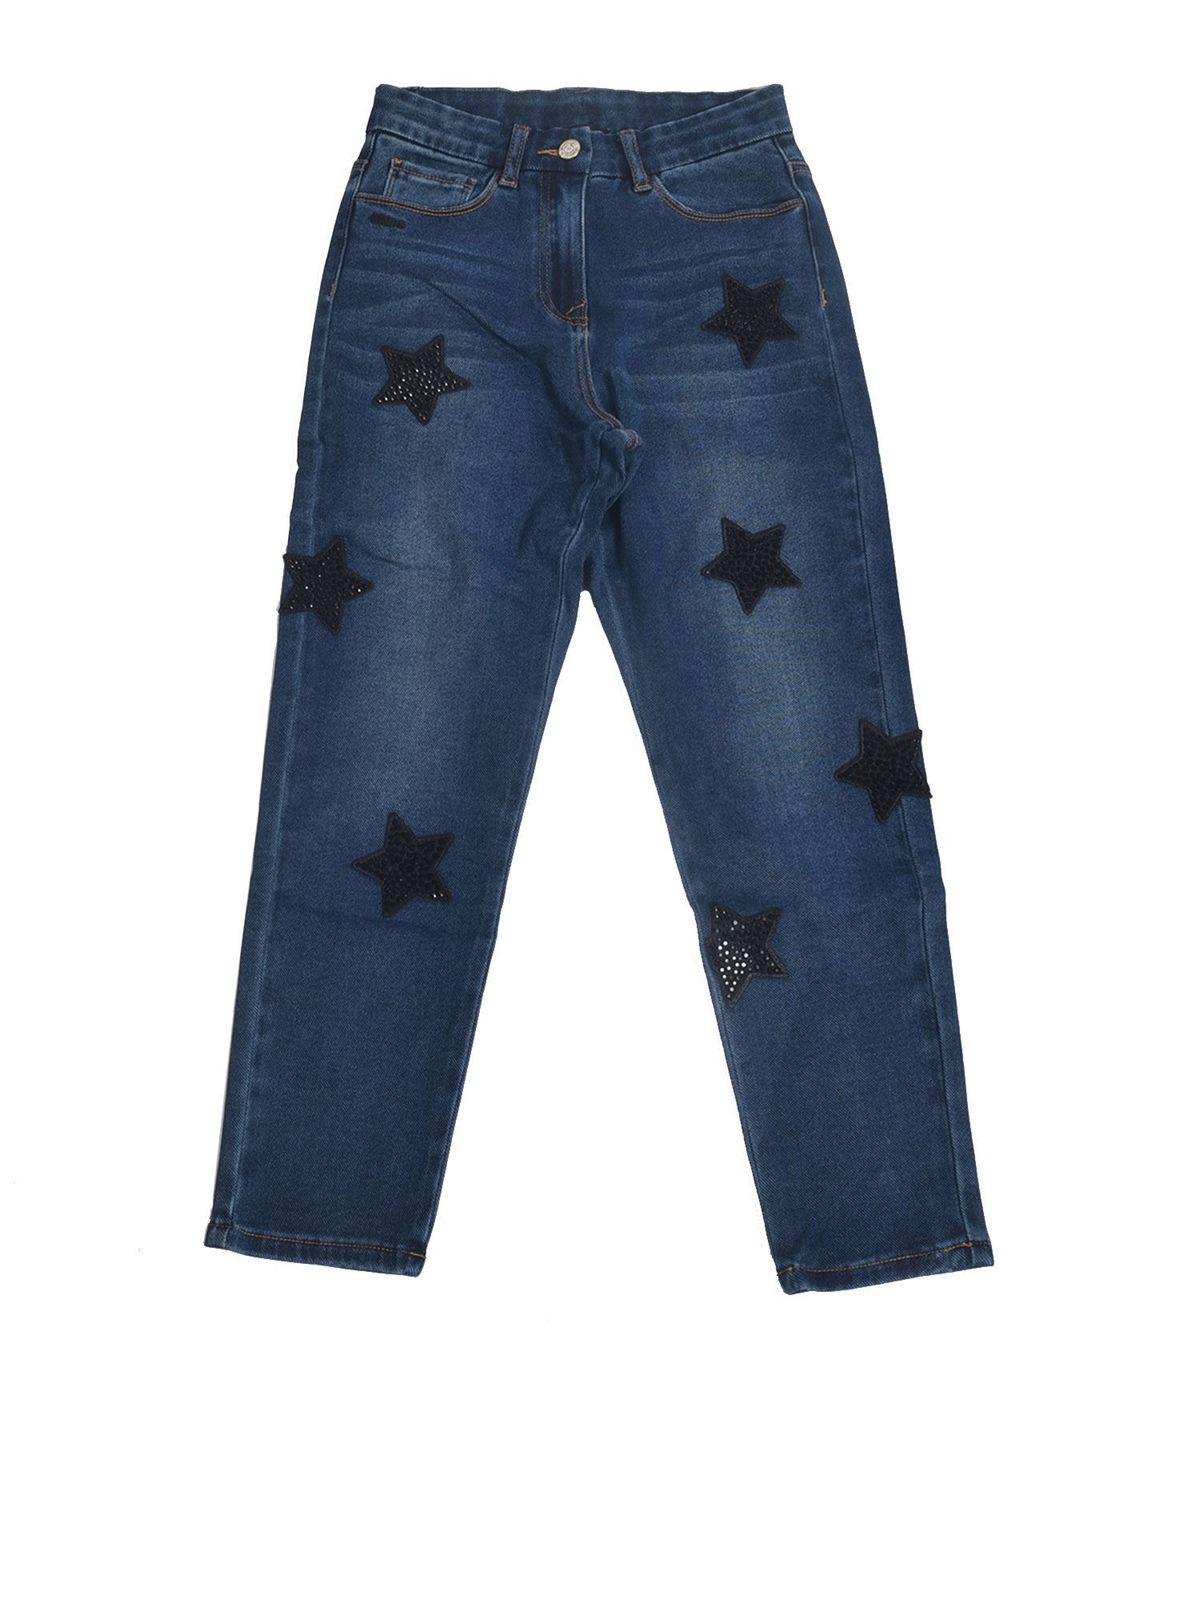 MONNALISA JEANS WITH STARS IN BLUE